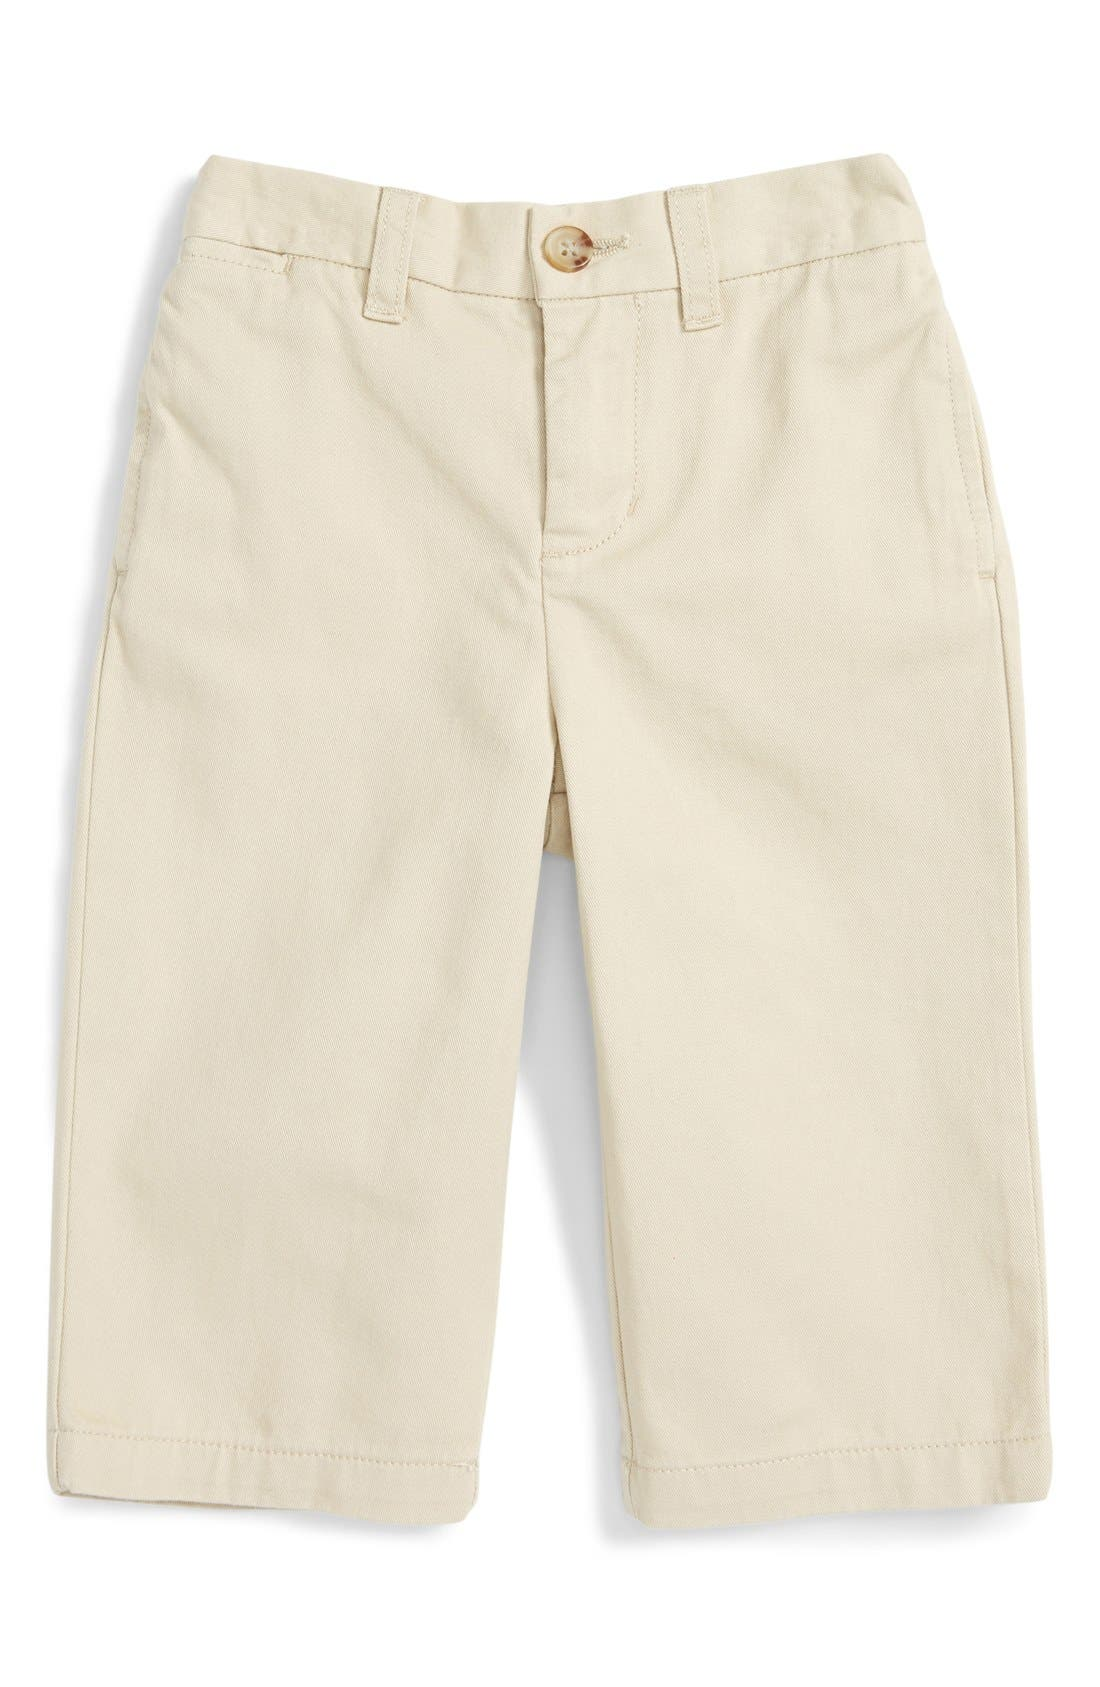 'Suffield' Chino Pants,                             Main thumbnail 1, color,                             270